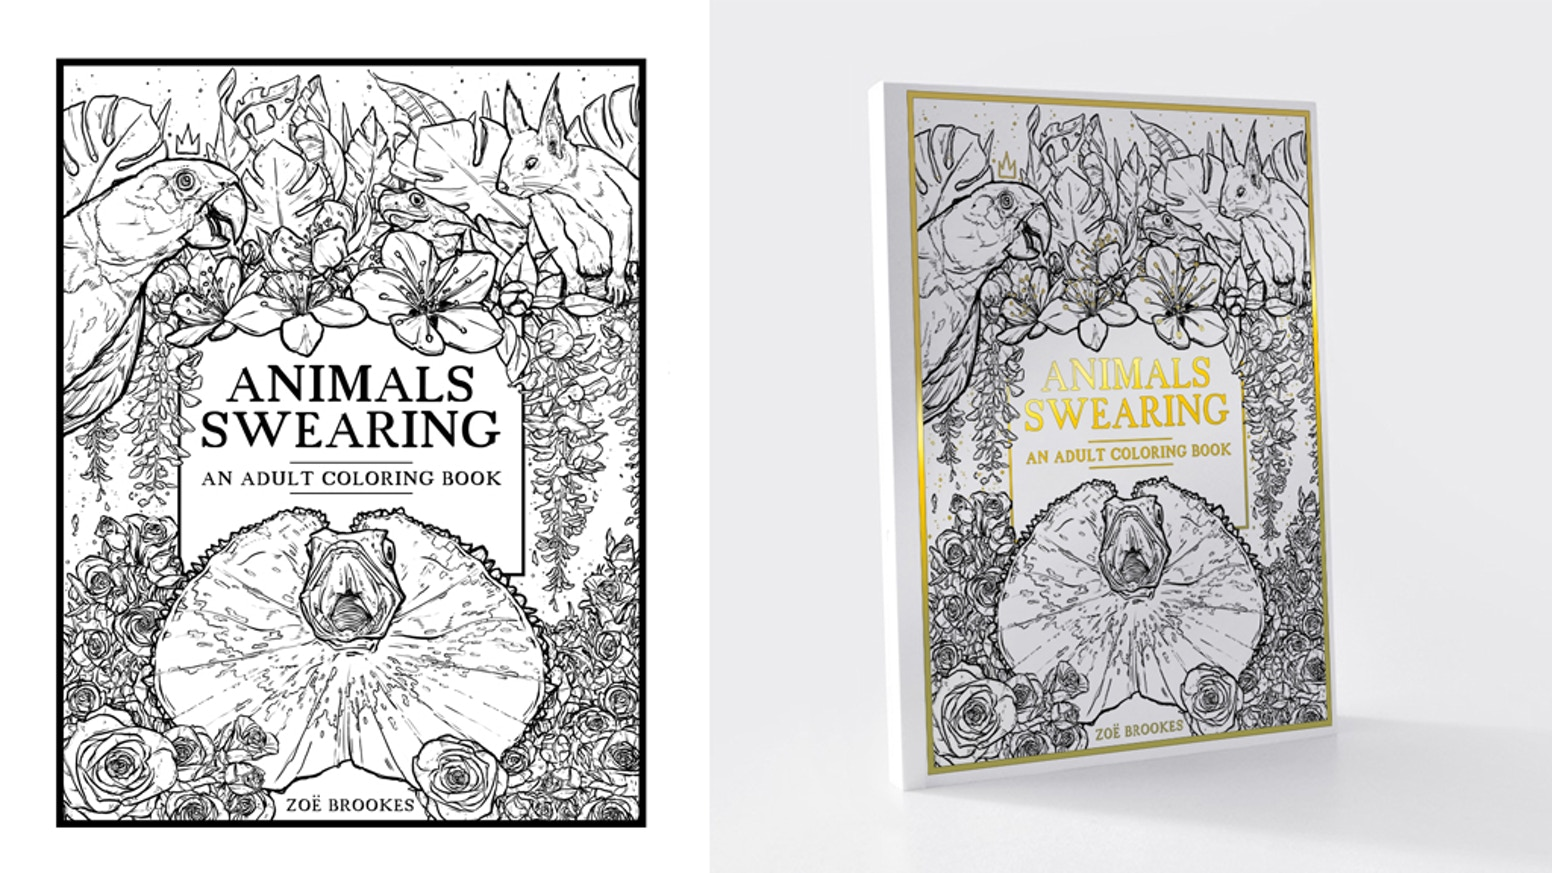 Animals Swearing: The Adult Coloring Book by Zoe » Polished ...